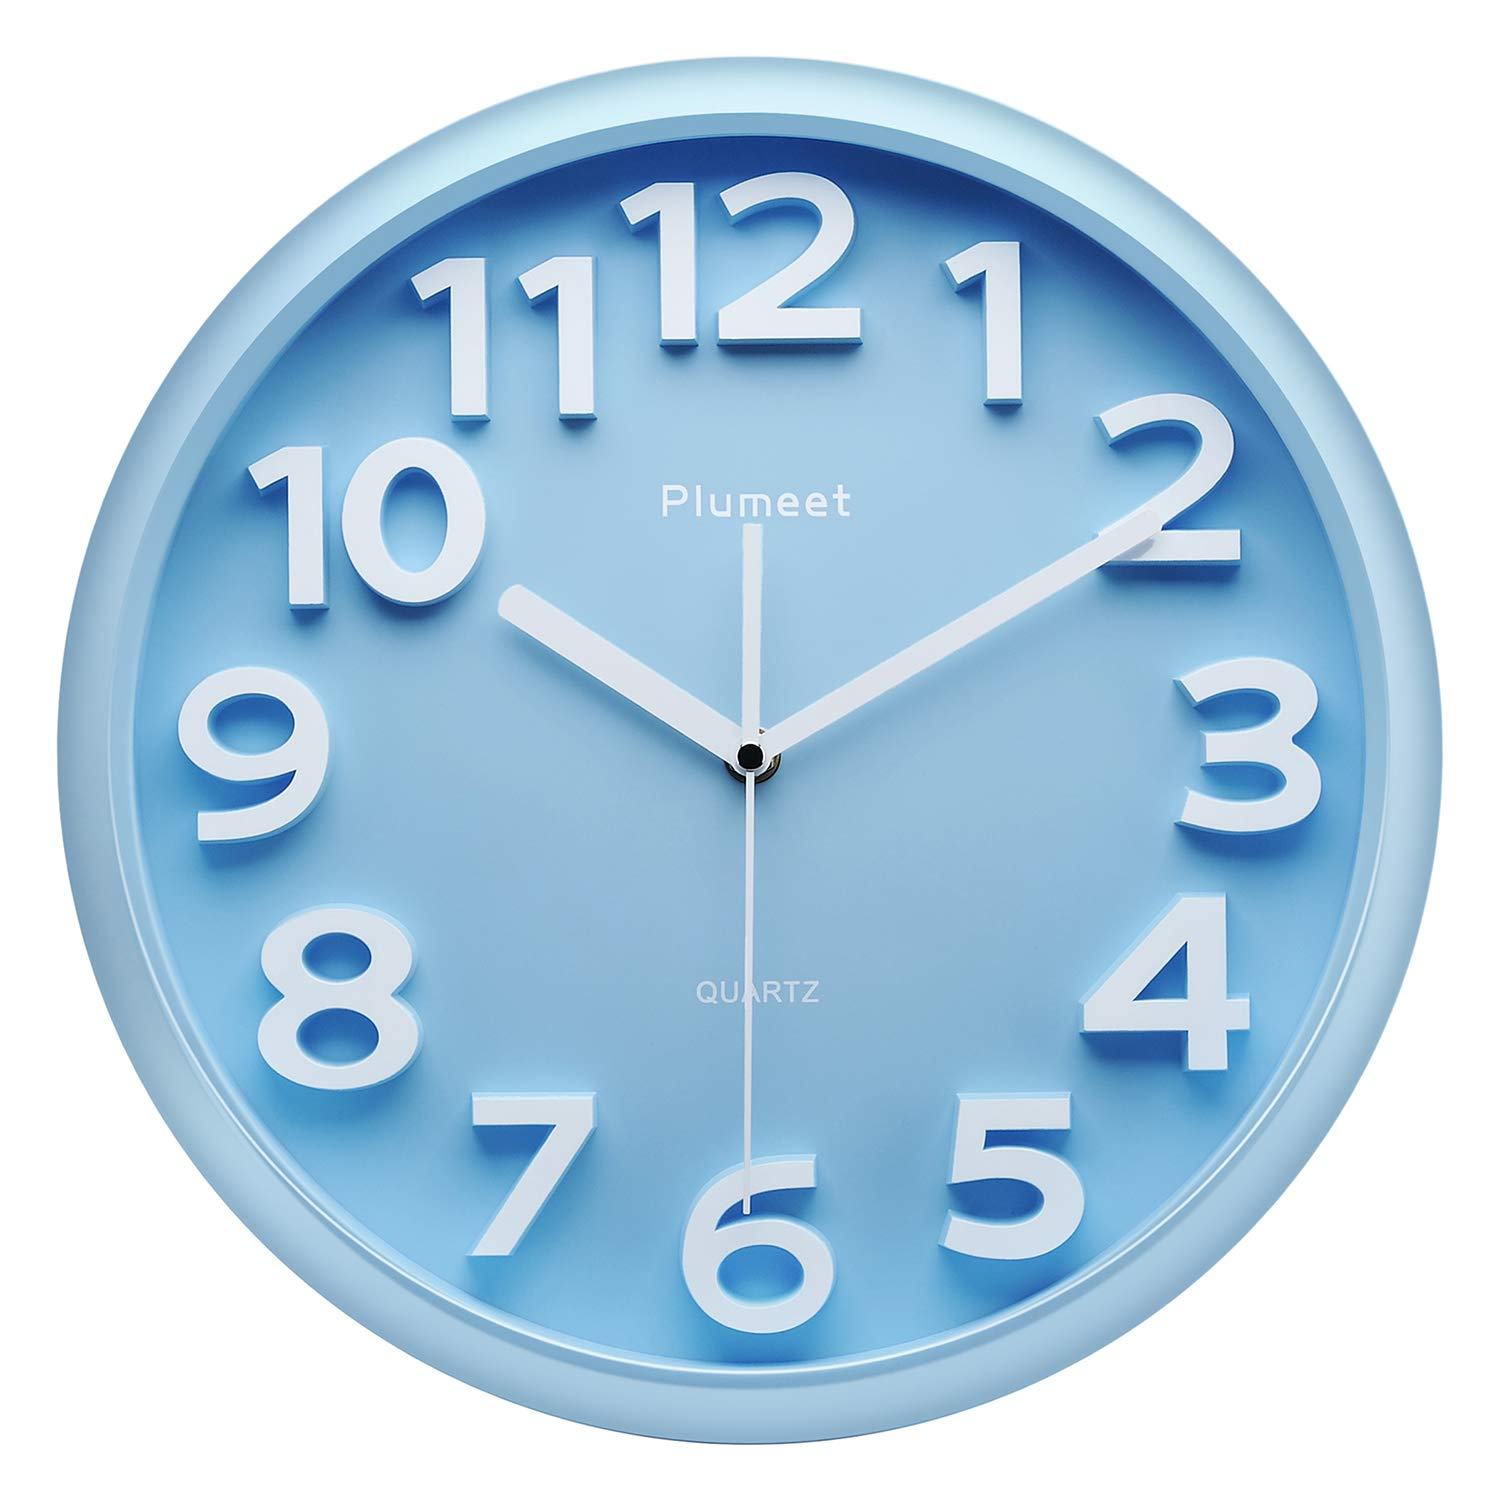 """Plumeet Large Wall Clock, 13"""" Silent Non-Ticking Quartz Decorative Clocks, Modern Style Good for Living Room Home Office Battery Operated (Blue)"""